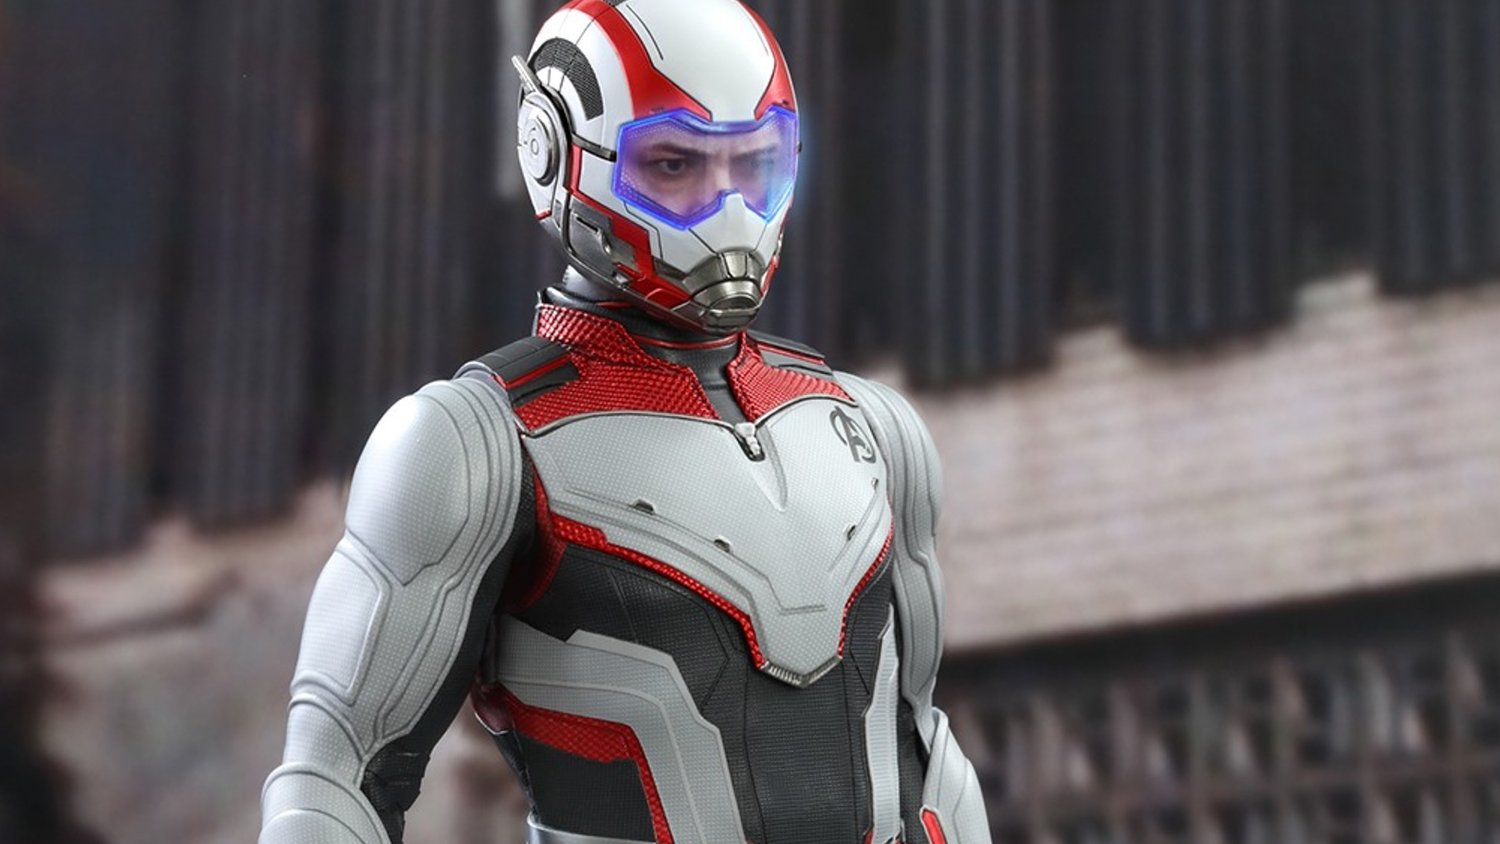 Hot Toys Shows Off Their Avengers Endgame Tony Stark